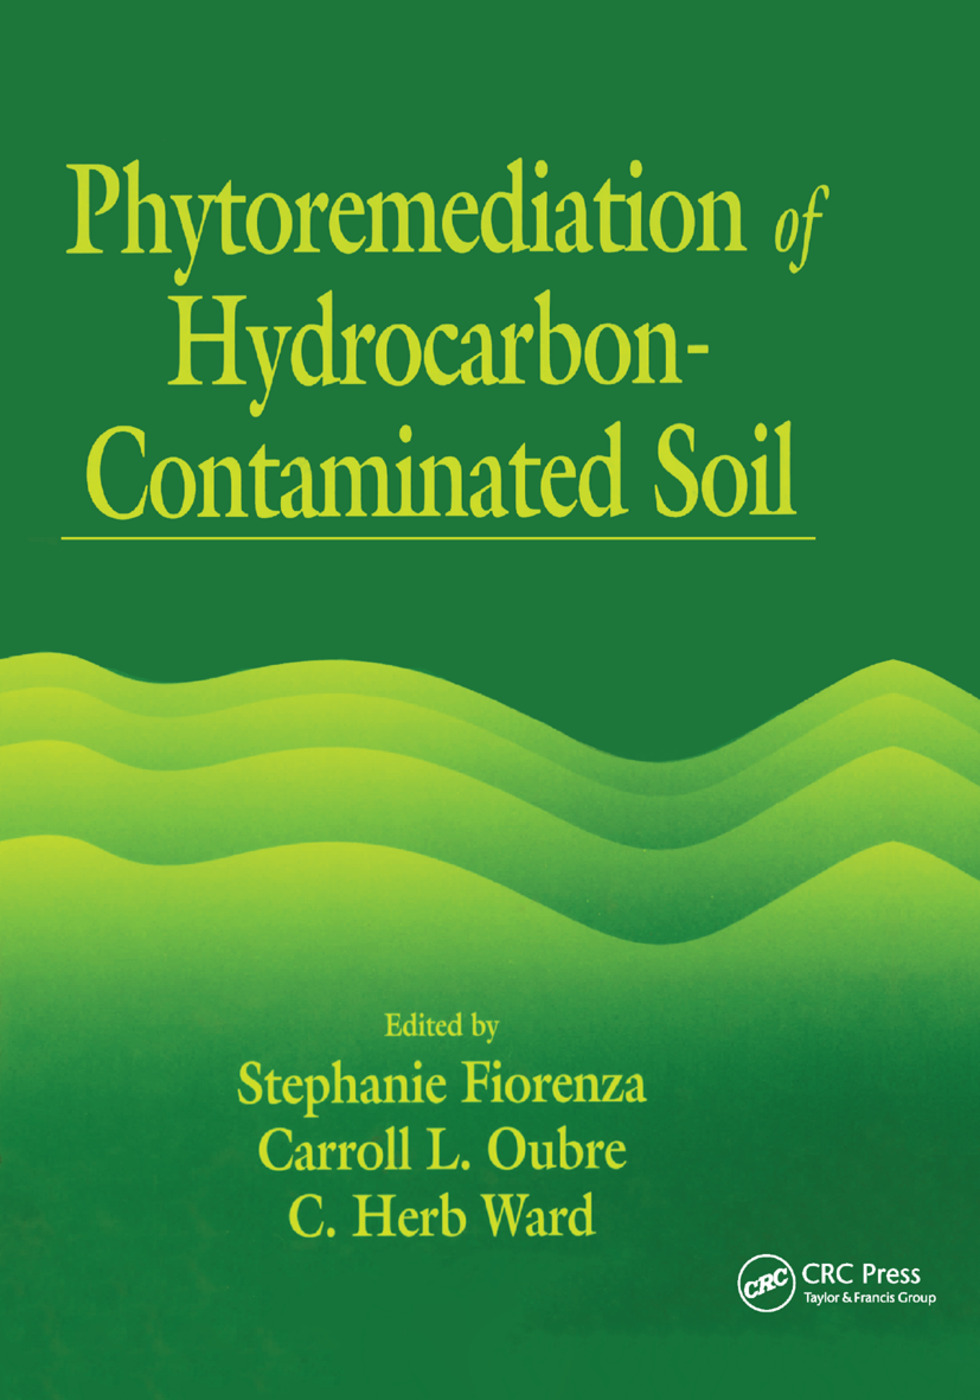 Phytoremediation of Hydrocarbon-Contaminated Soils: 1st Edition (Paperback) book cover